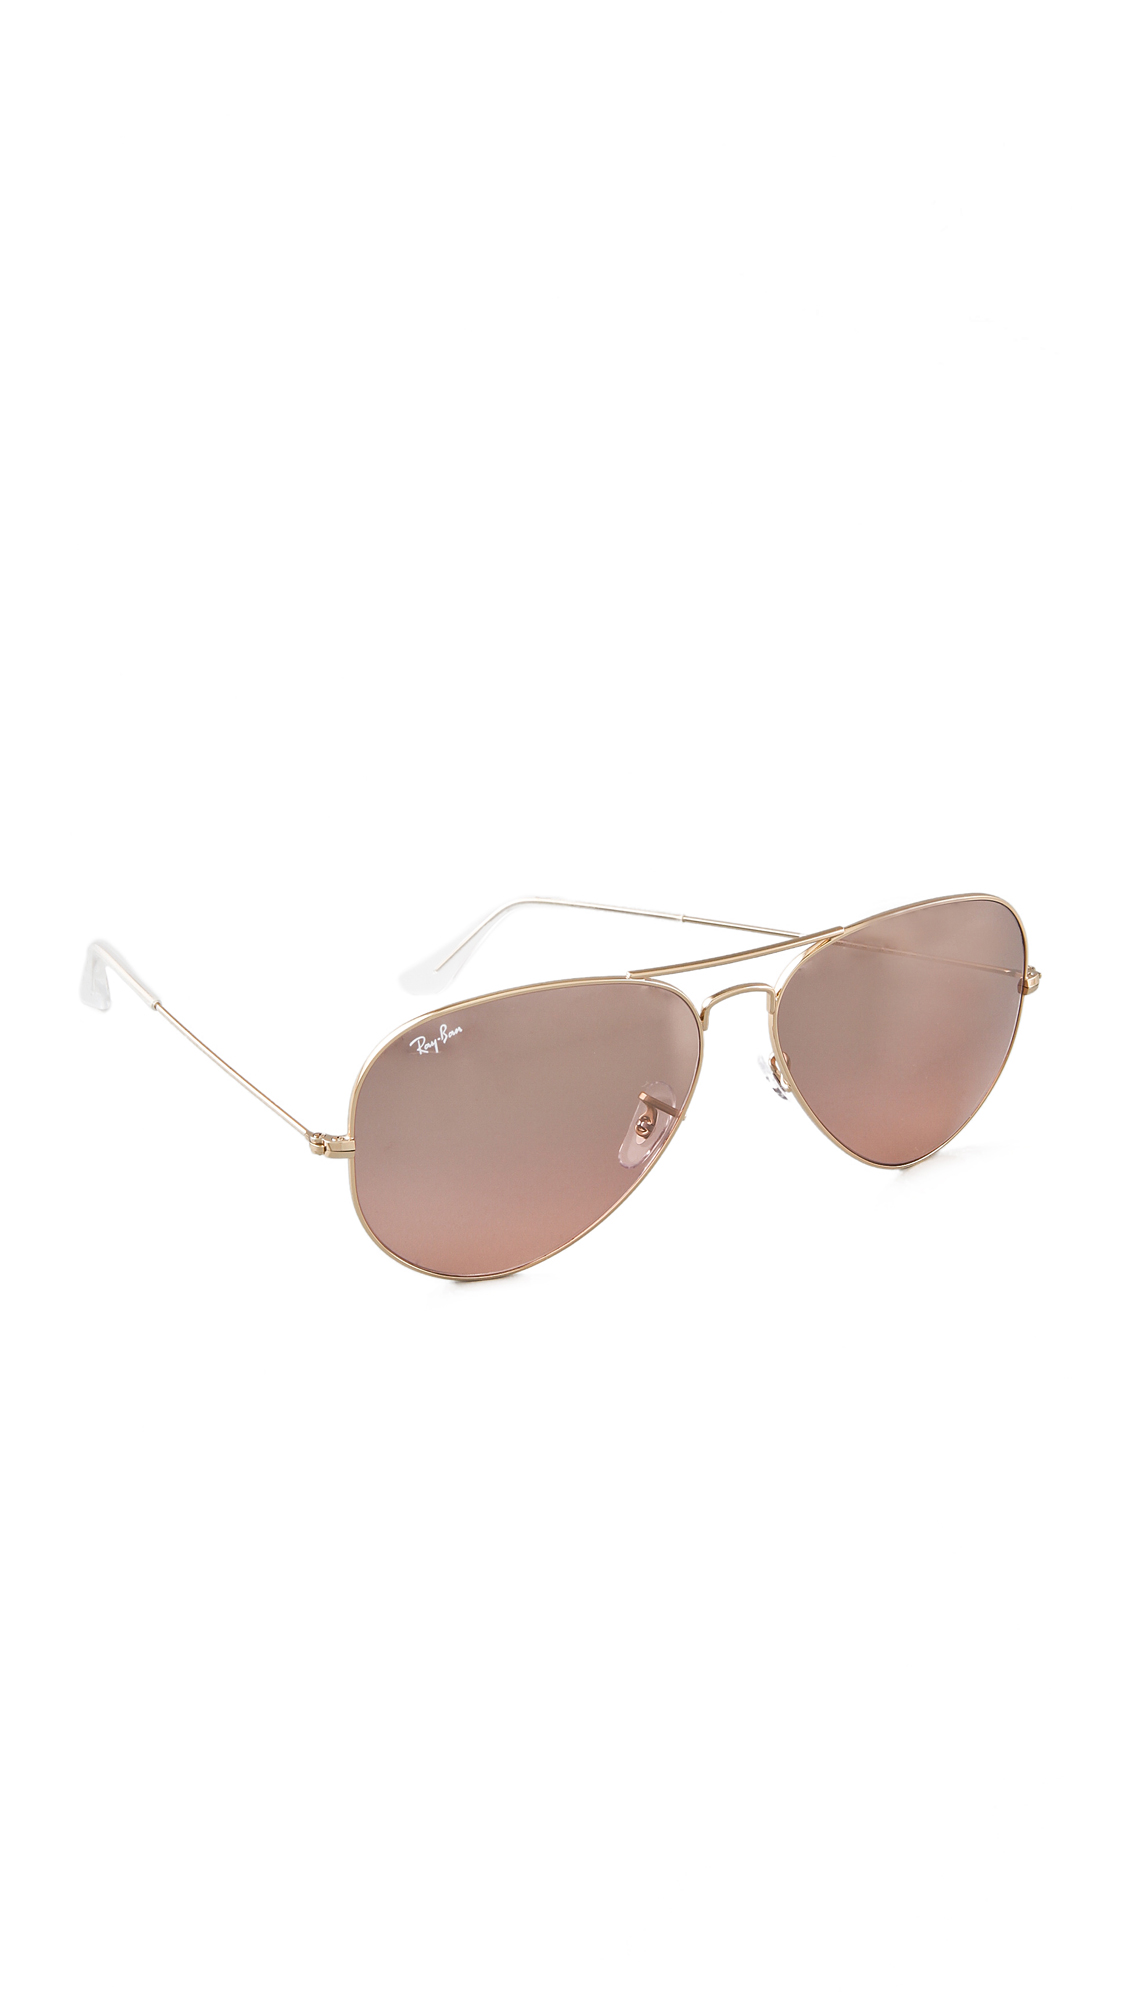 oversized aviators ray ban  Ray-Ban Oversized Original Aviator Sunglasses